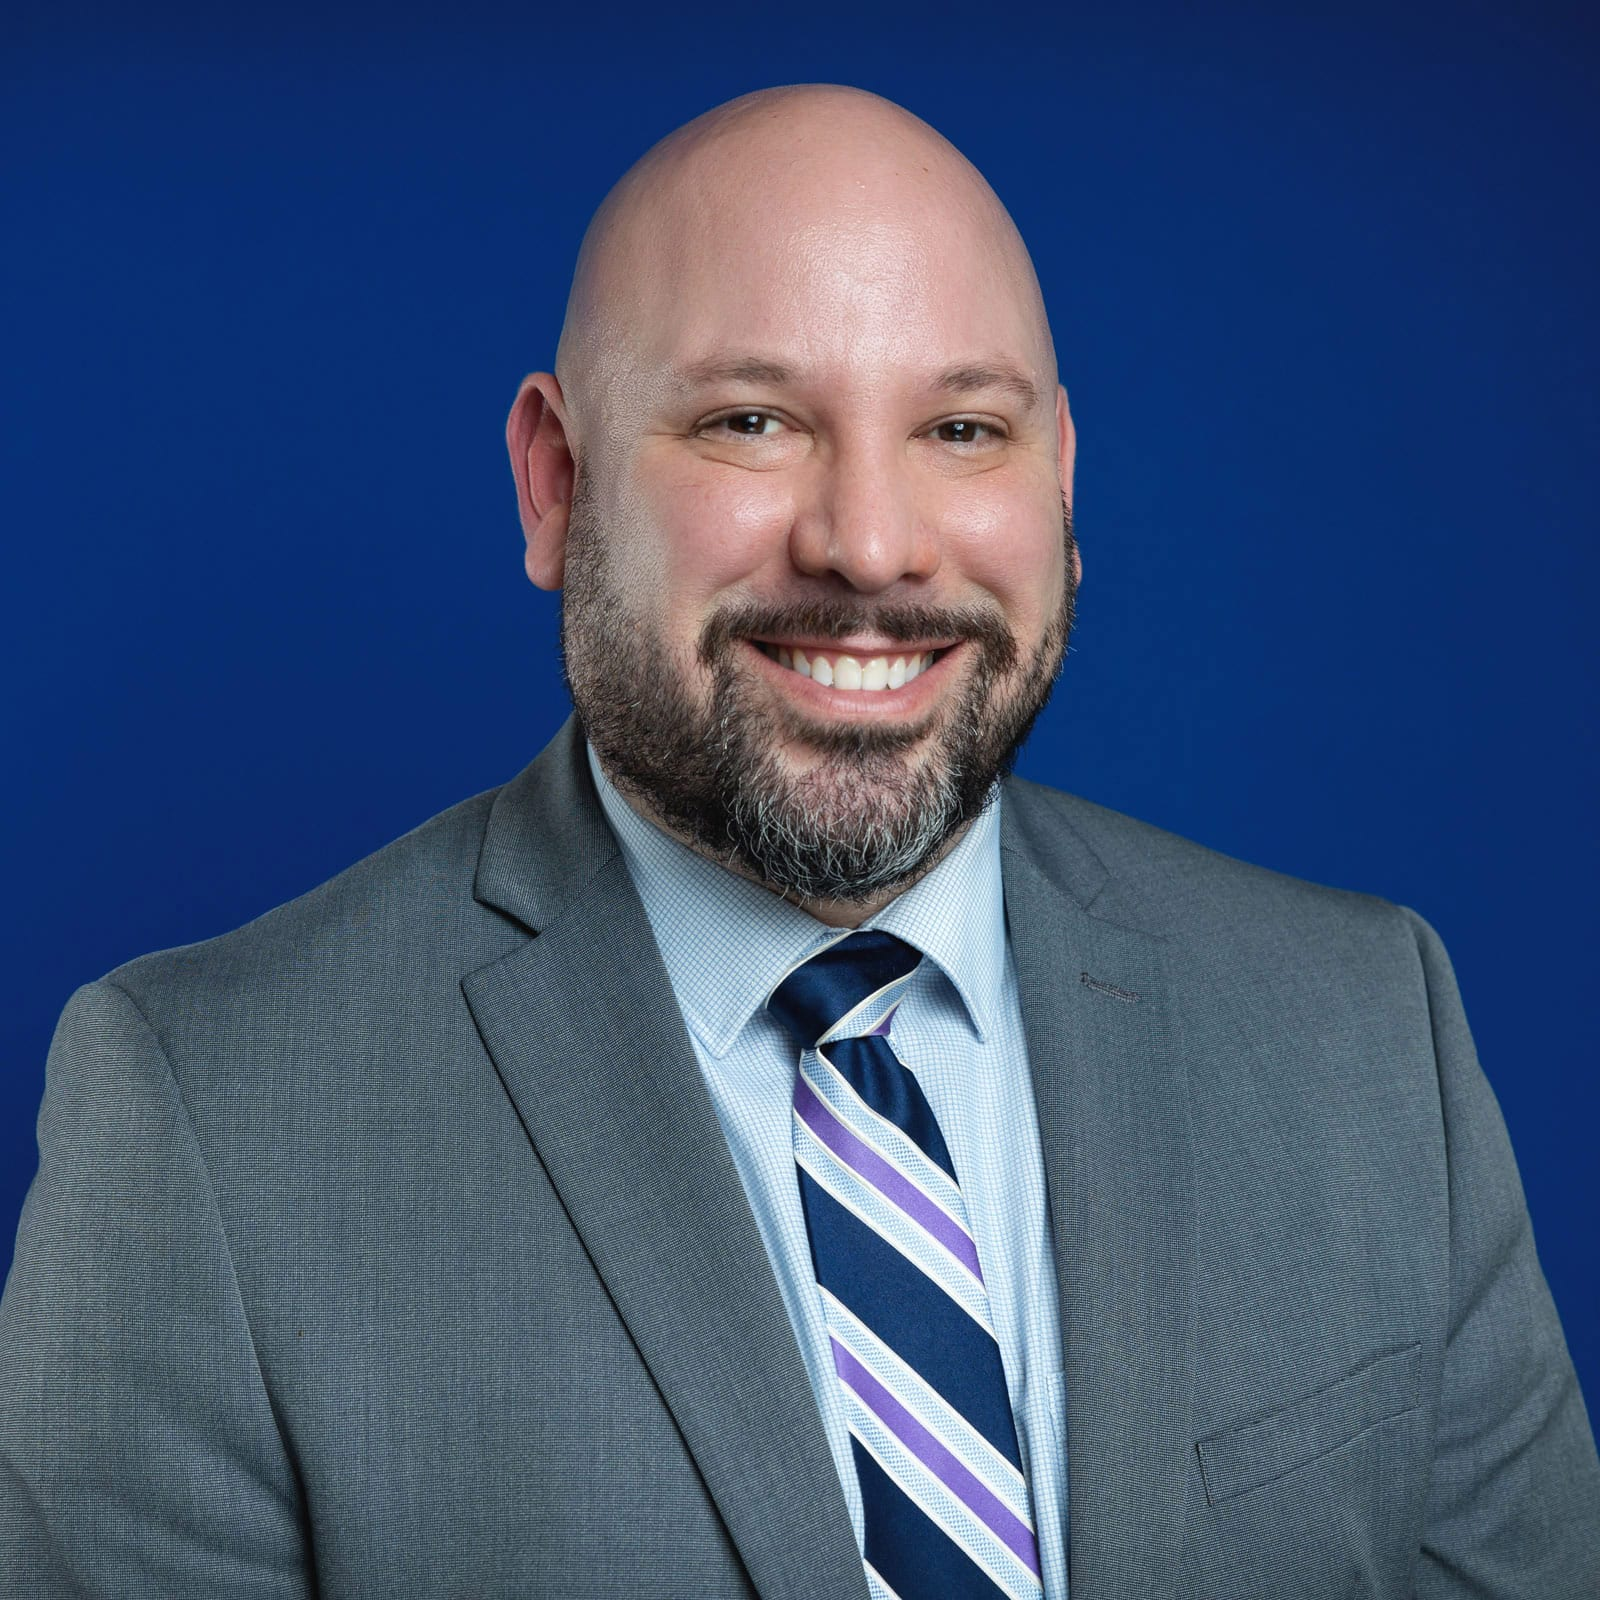 Jonathan Hyman, Attorney at Law, practicing immigration law in the Tri-Cities at Clearwater Law Group